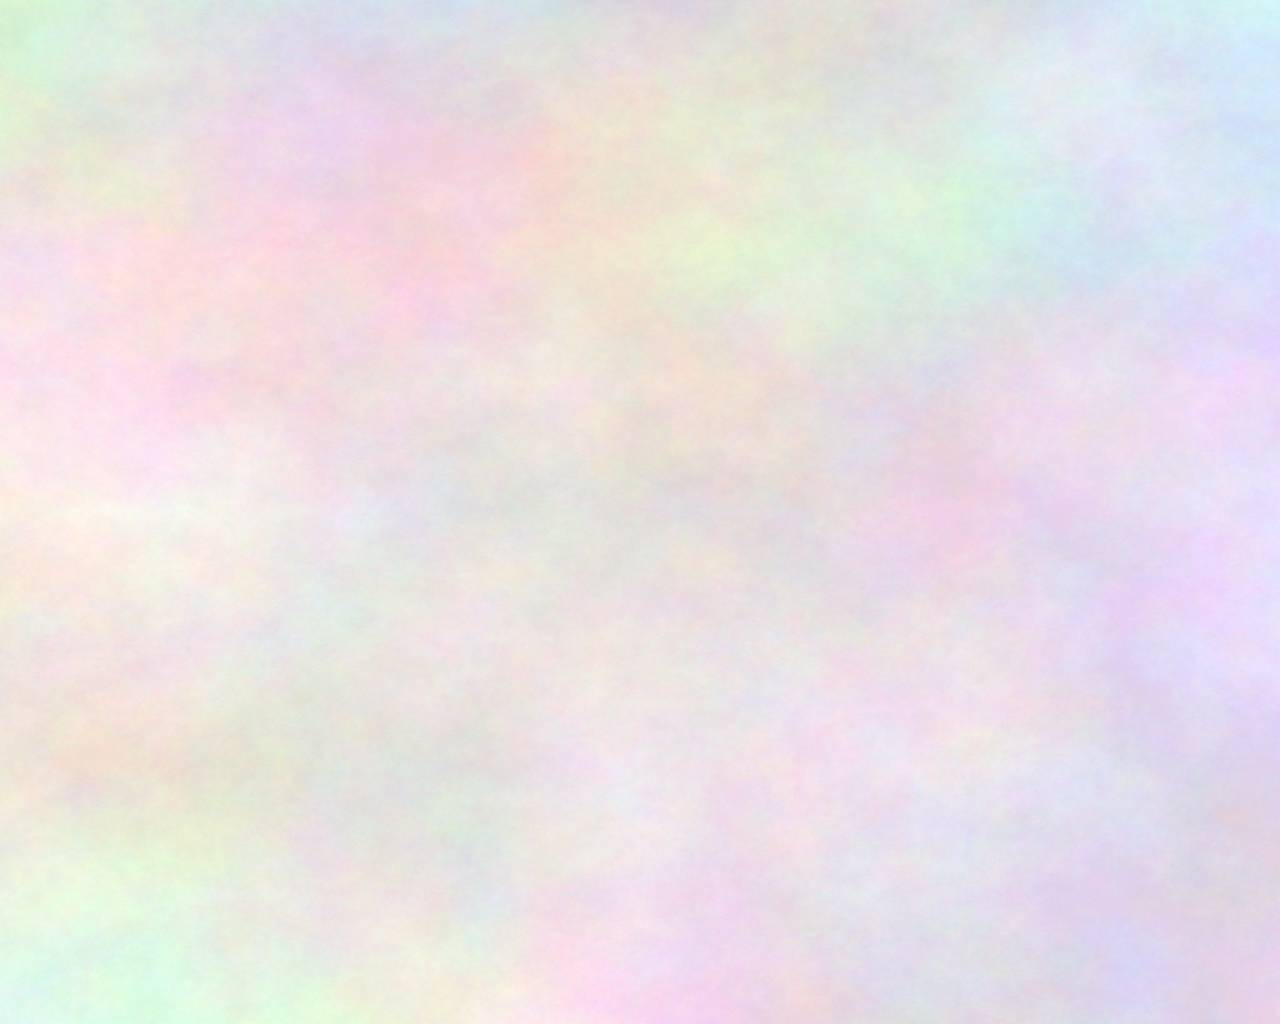 Background Wallpaper Image: Pastel Plasma Colors